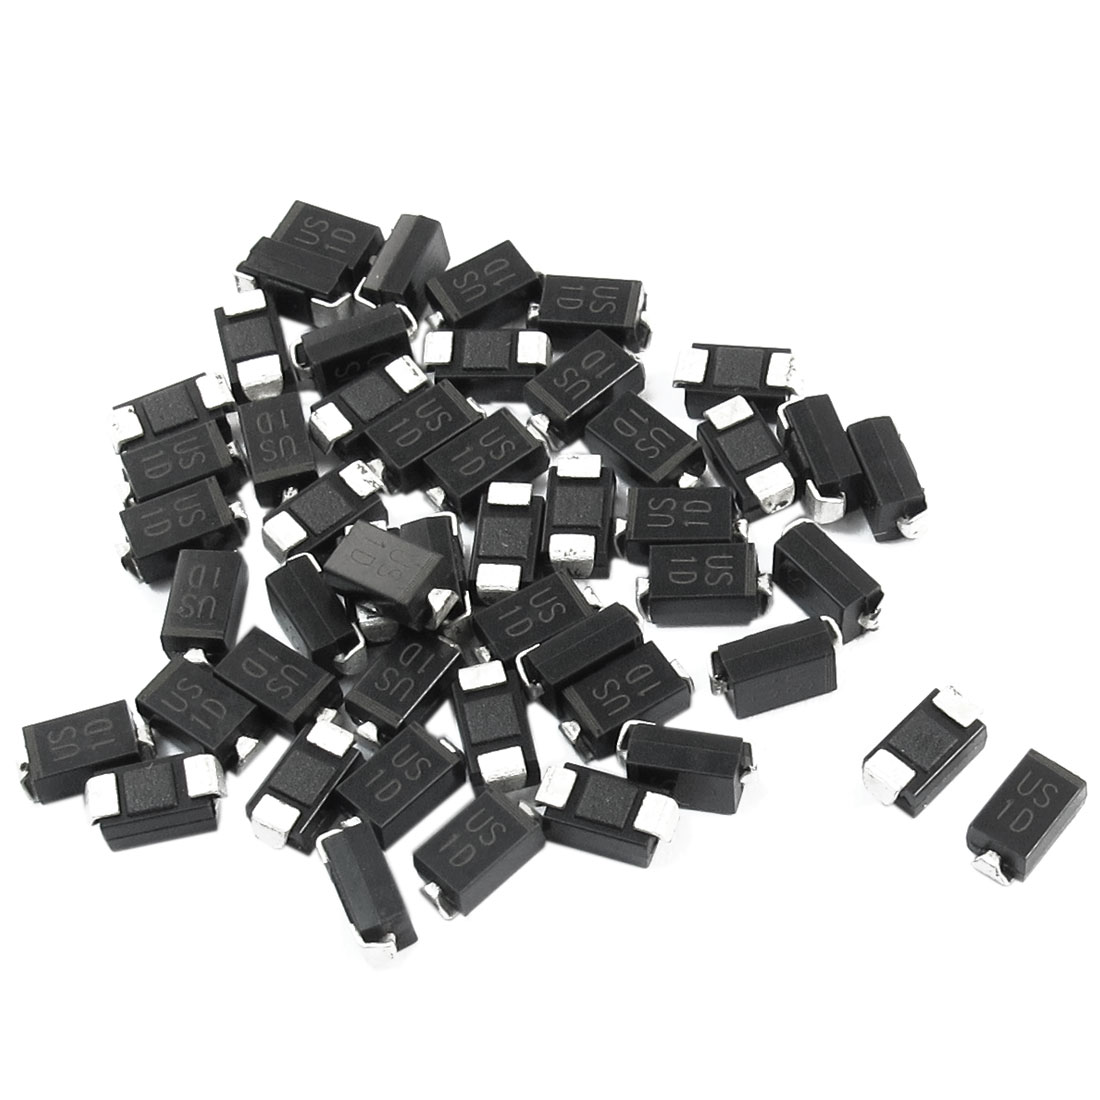 Electric SMD DO-214AC 200V 1A High Efficiency Rectifier Diode US1D 50pcs